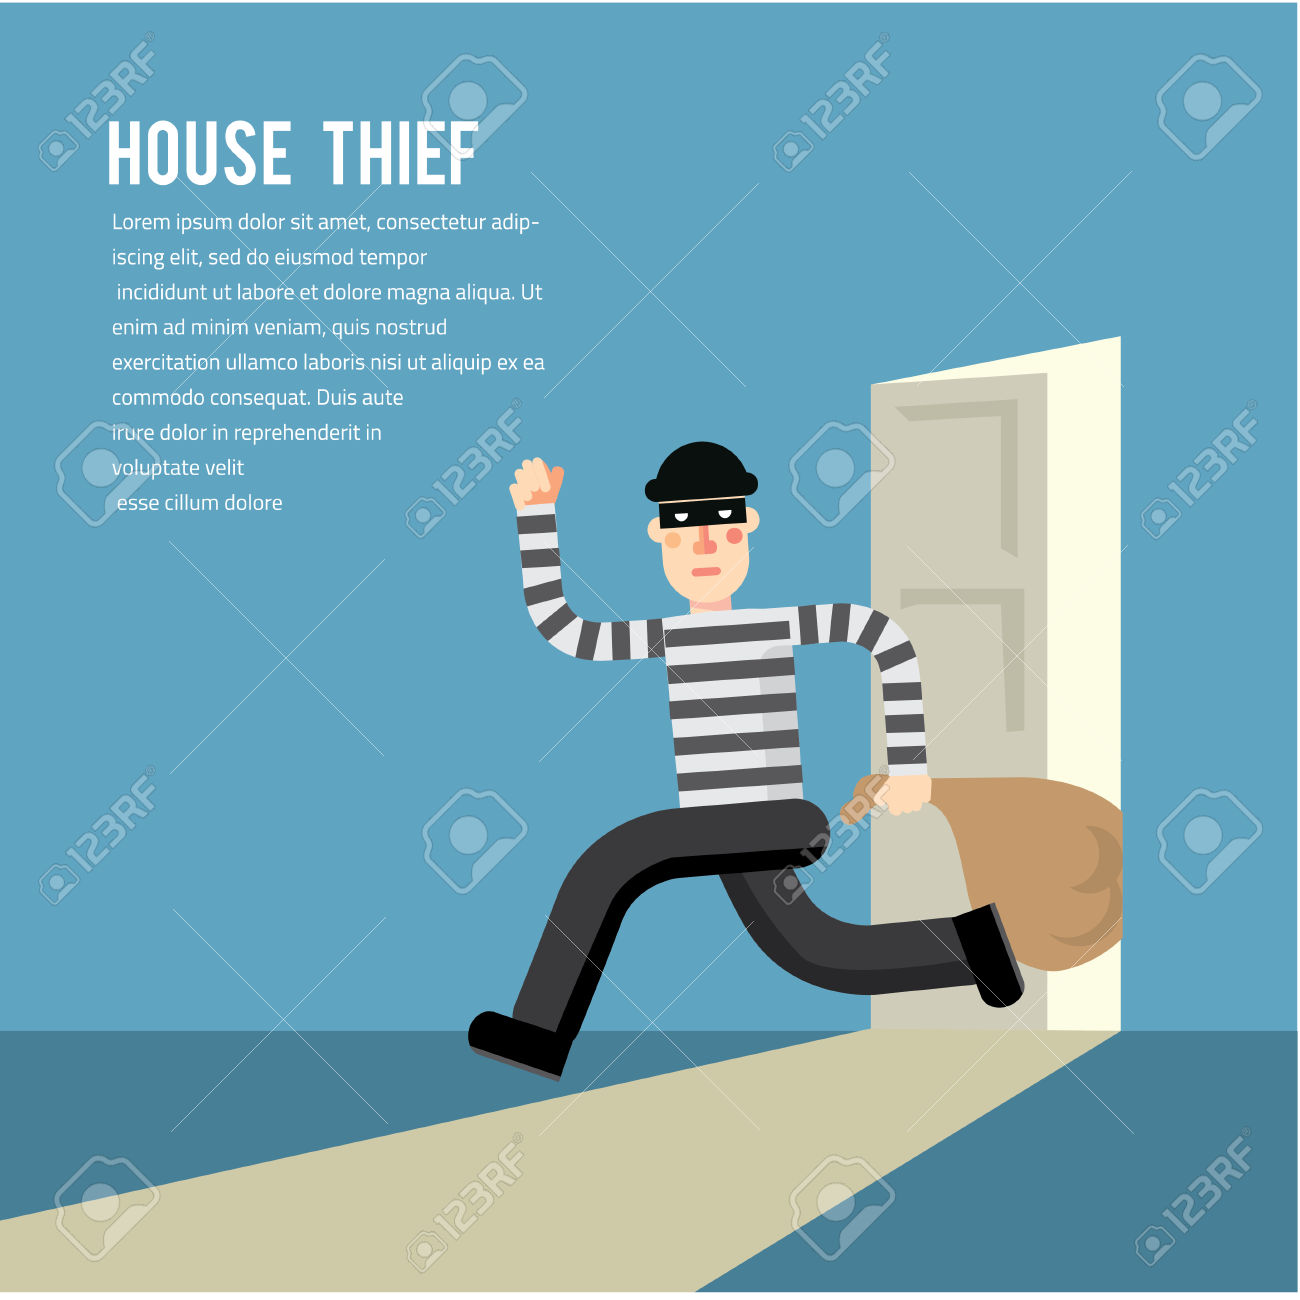 Stele clipground stock illustrations. Burglar clipart in house